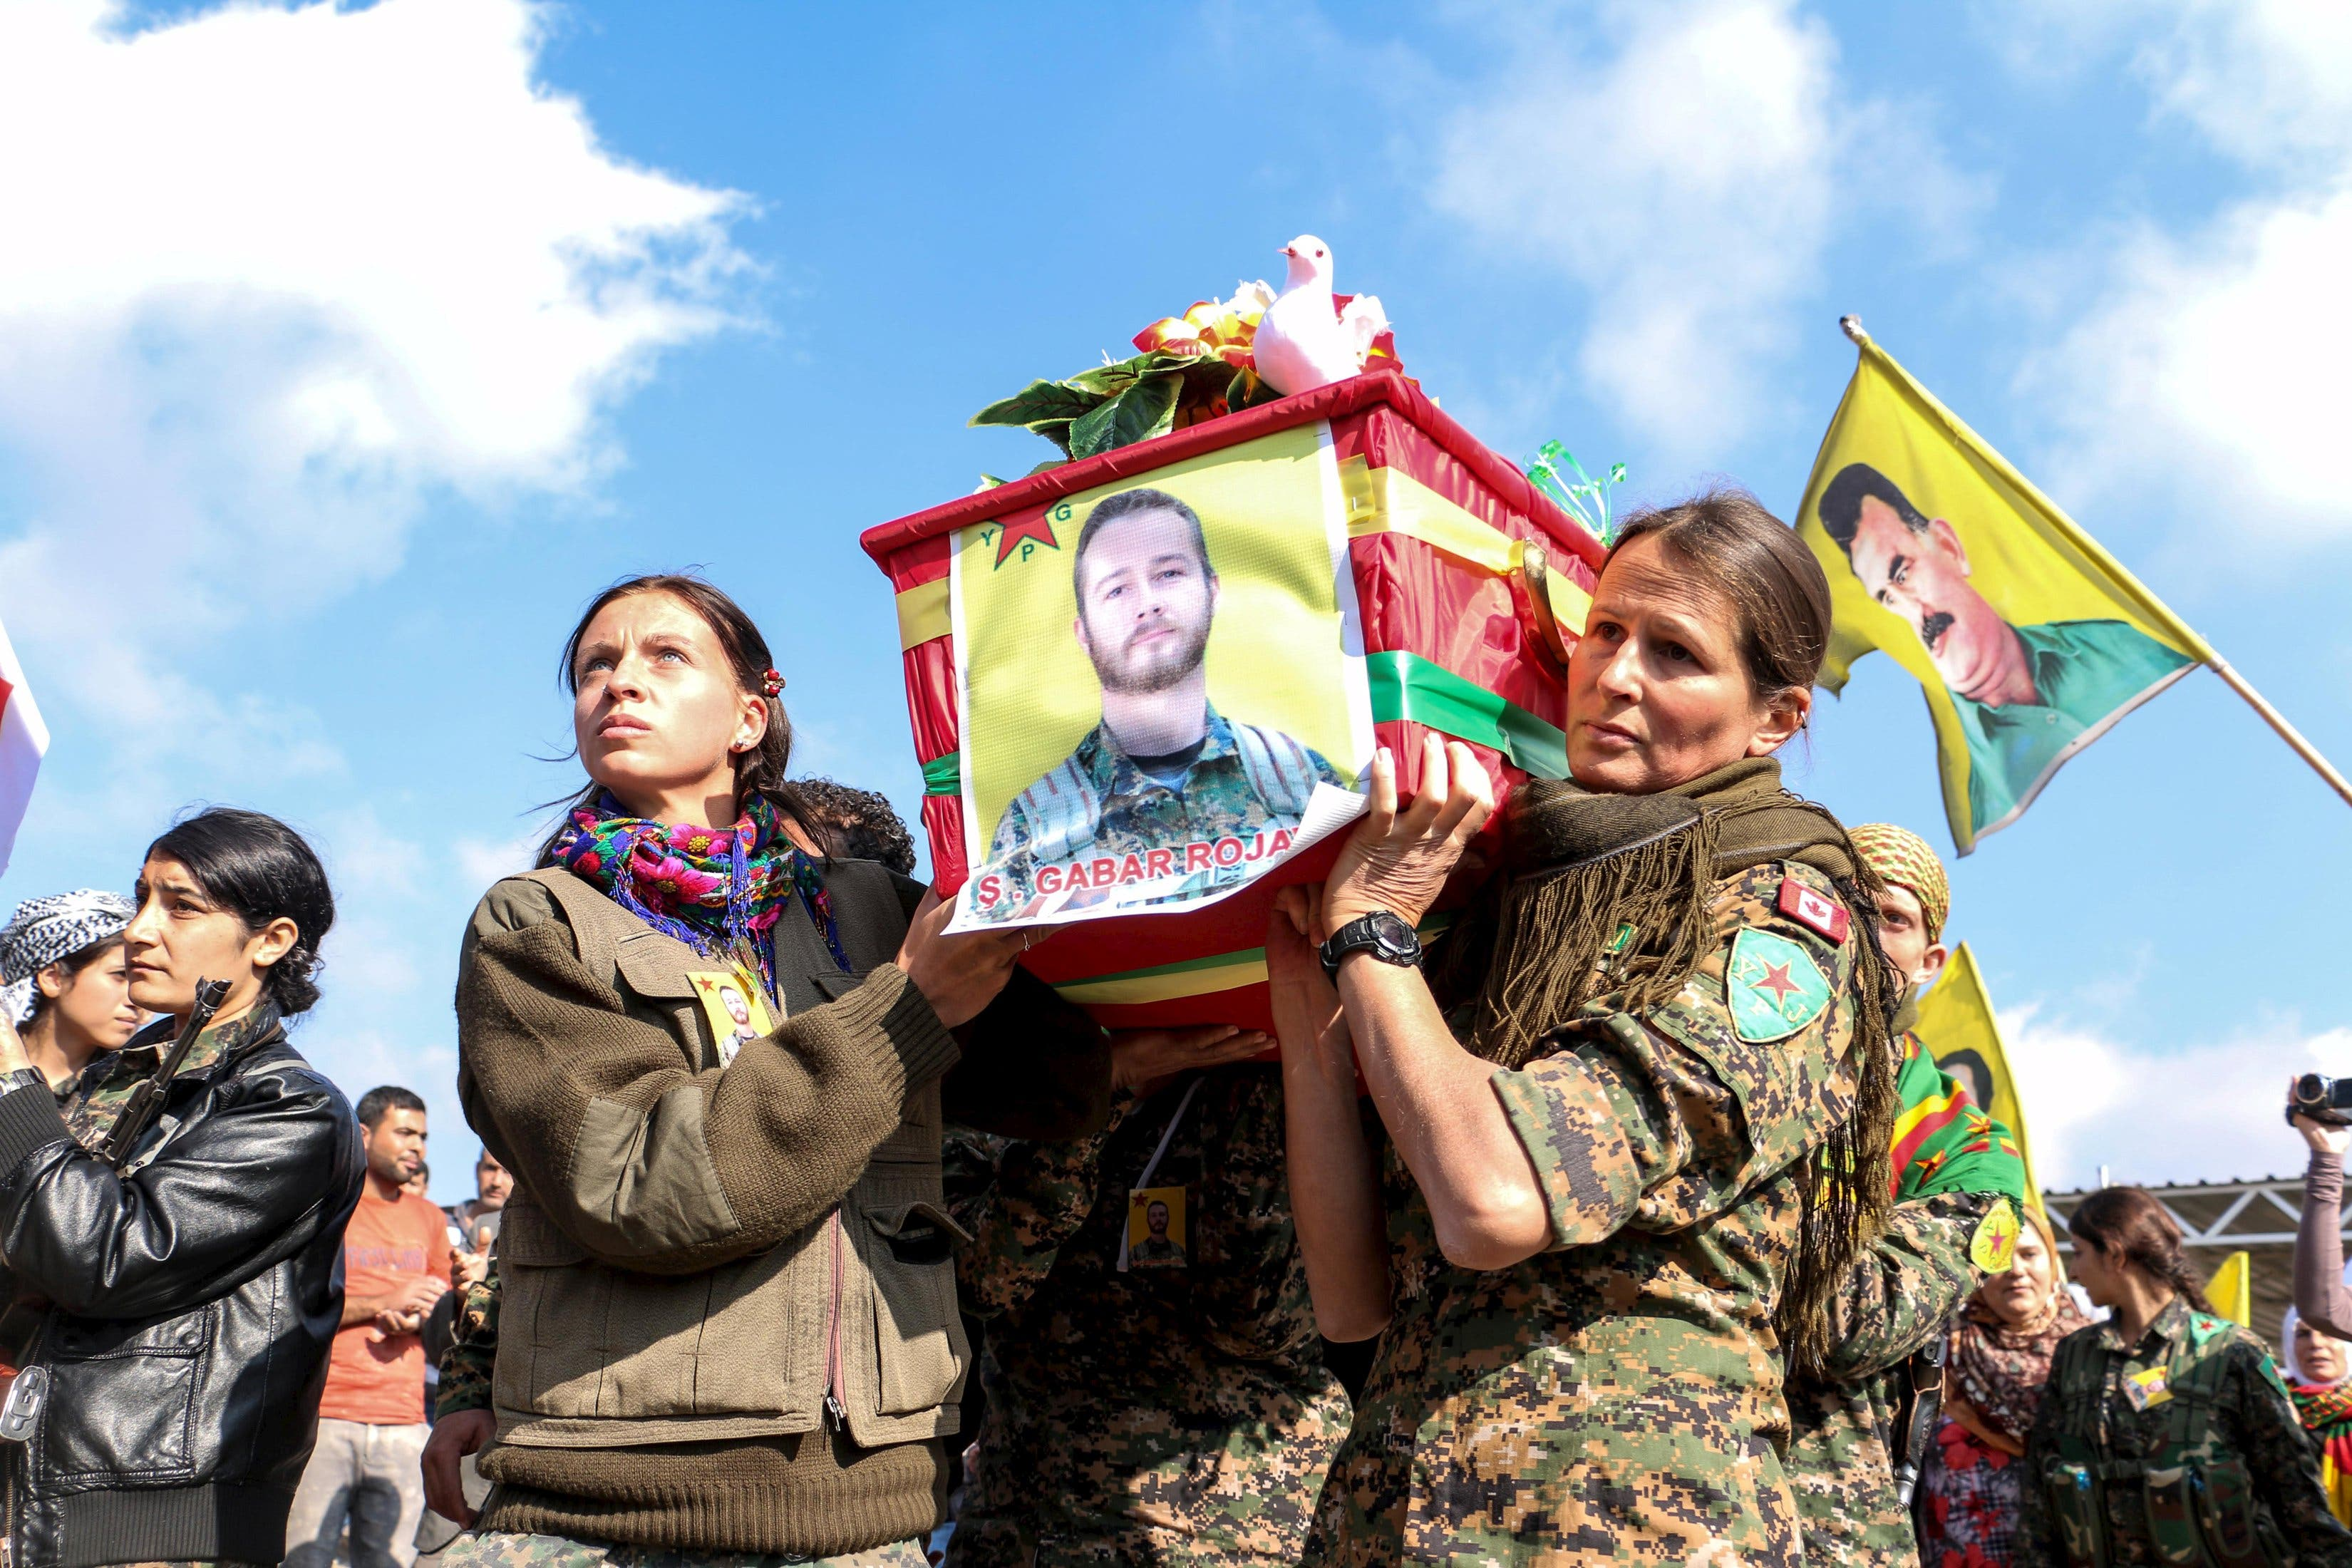 Kurdish People's Protection Units (YPG) fighters carry the coffin of fellow fighter John Robert Gallagher, a Canadian who died on November 4 in battle with Islamic State fighters, during his funeral in Hasaka, Syria November 12, 2015.